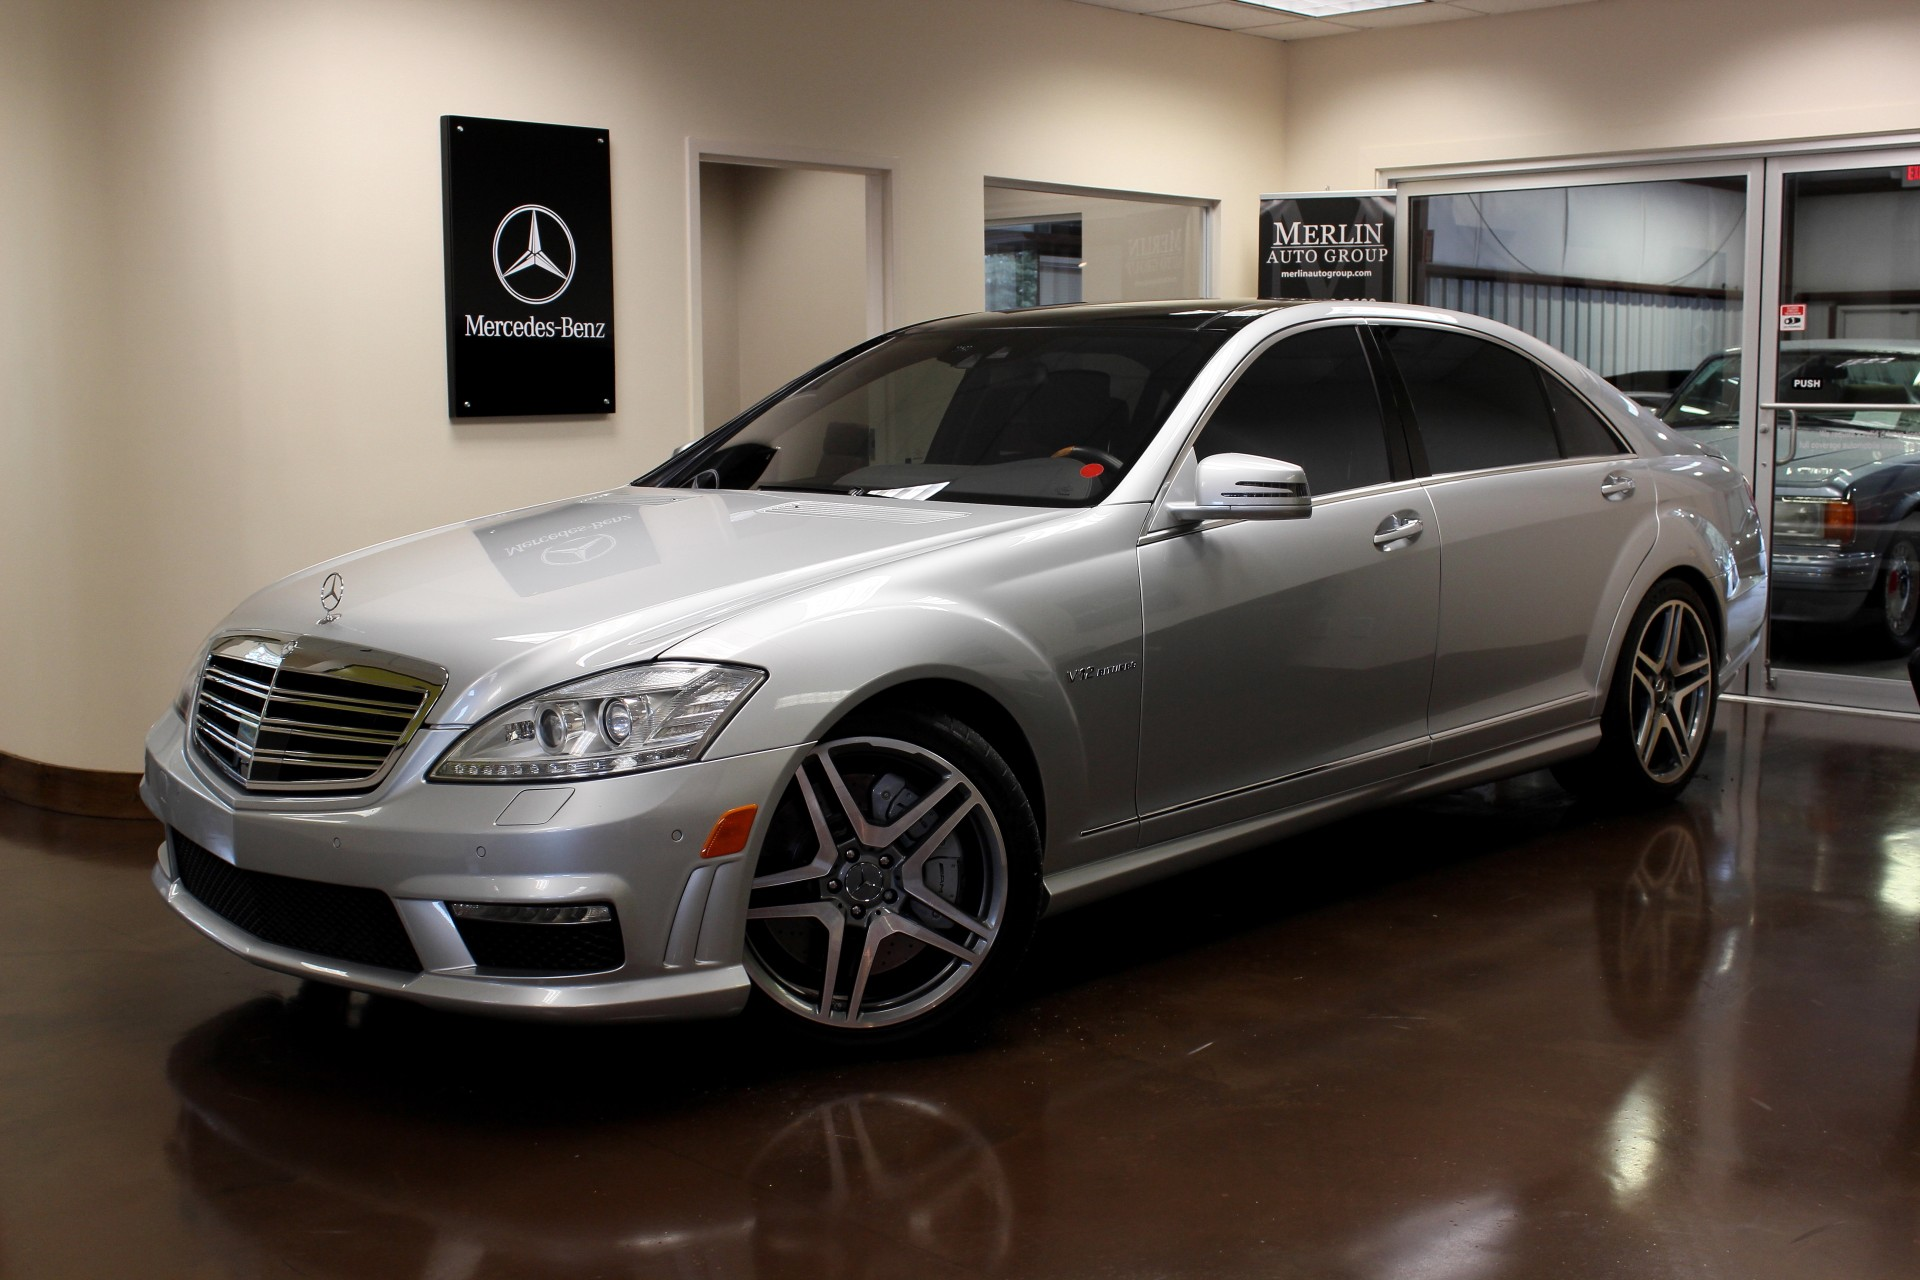 2010 mercedes benz s class for sale in atlanta ga cargurus for Used mercedes benz in atlanta ga